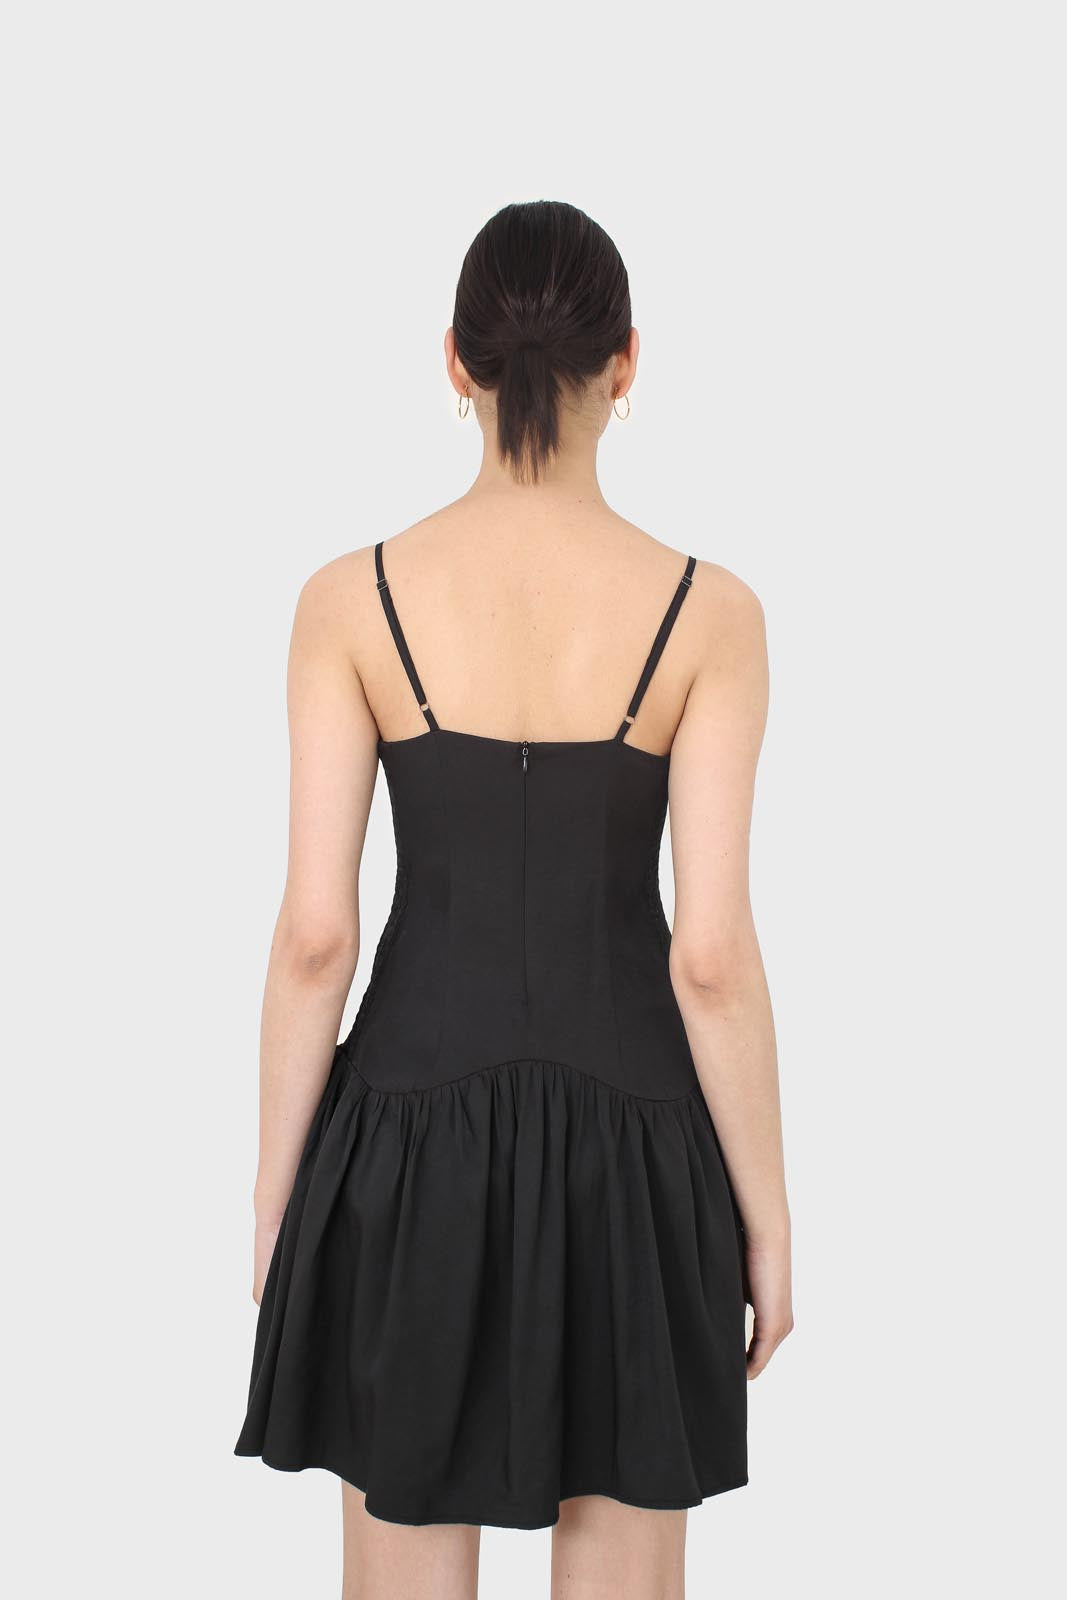 Black spaghetti strap tie back mini dress9